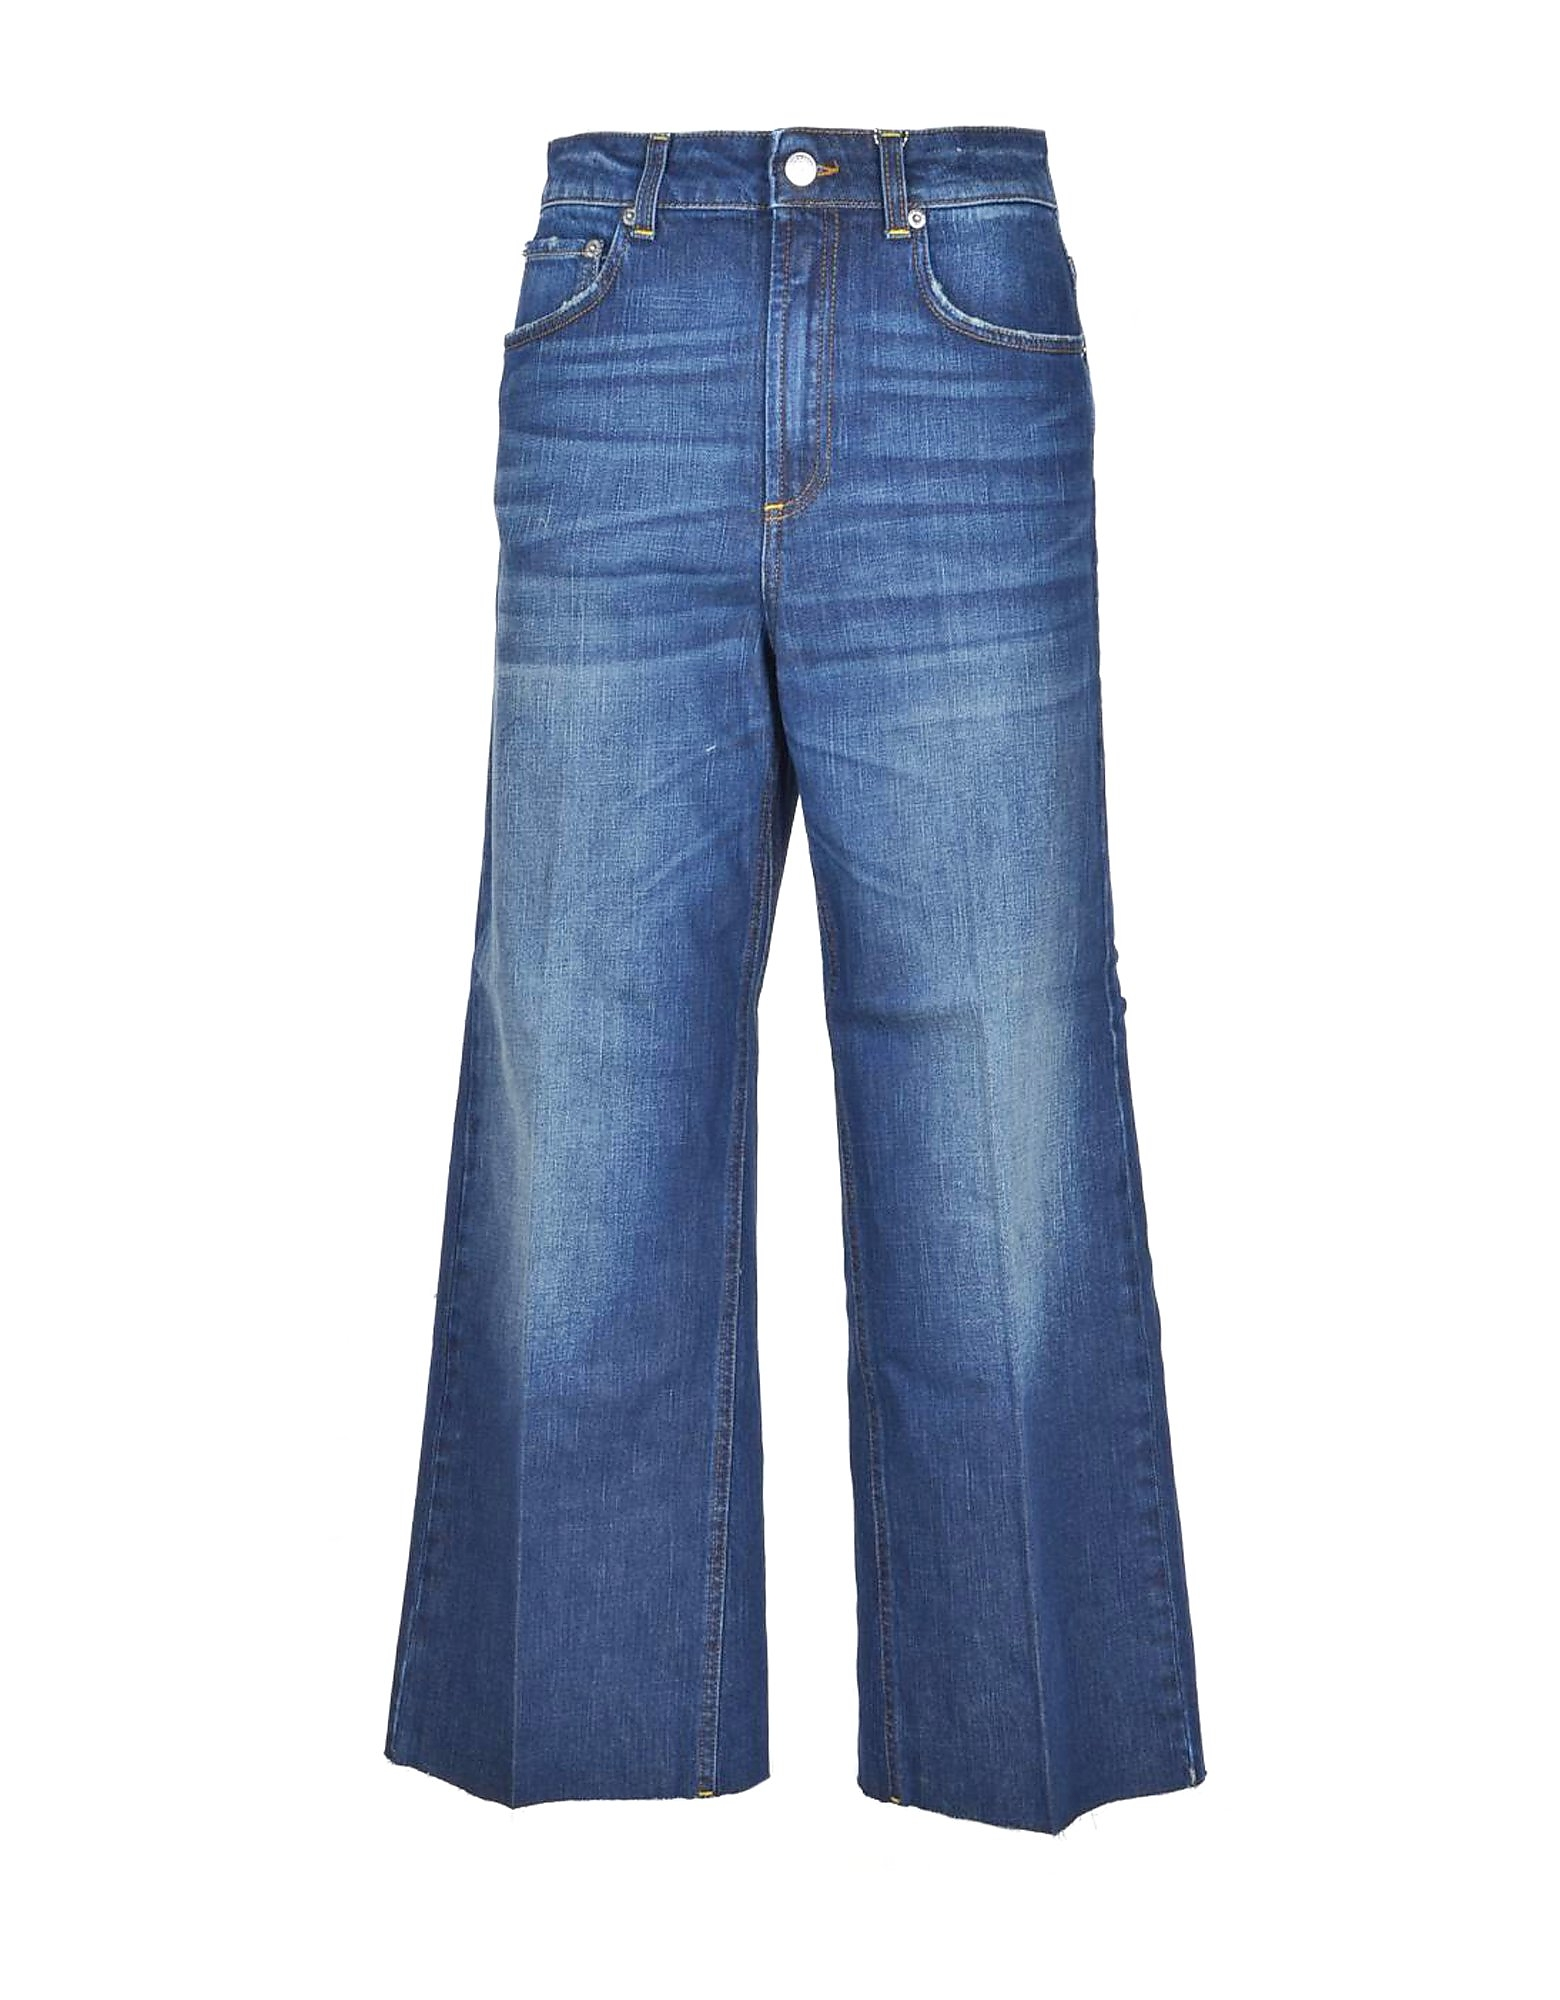 Department 5 Designer Jeans, Women's Denim Jeans